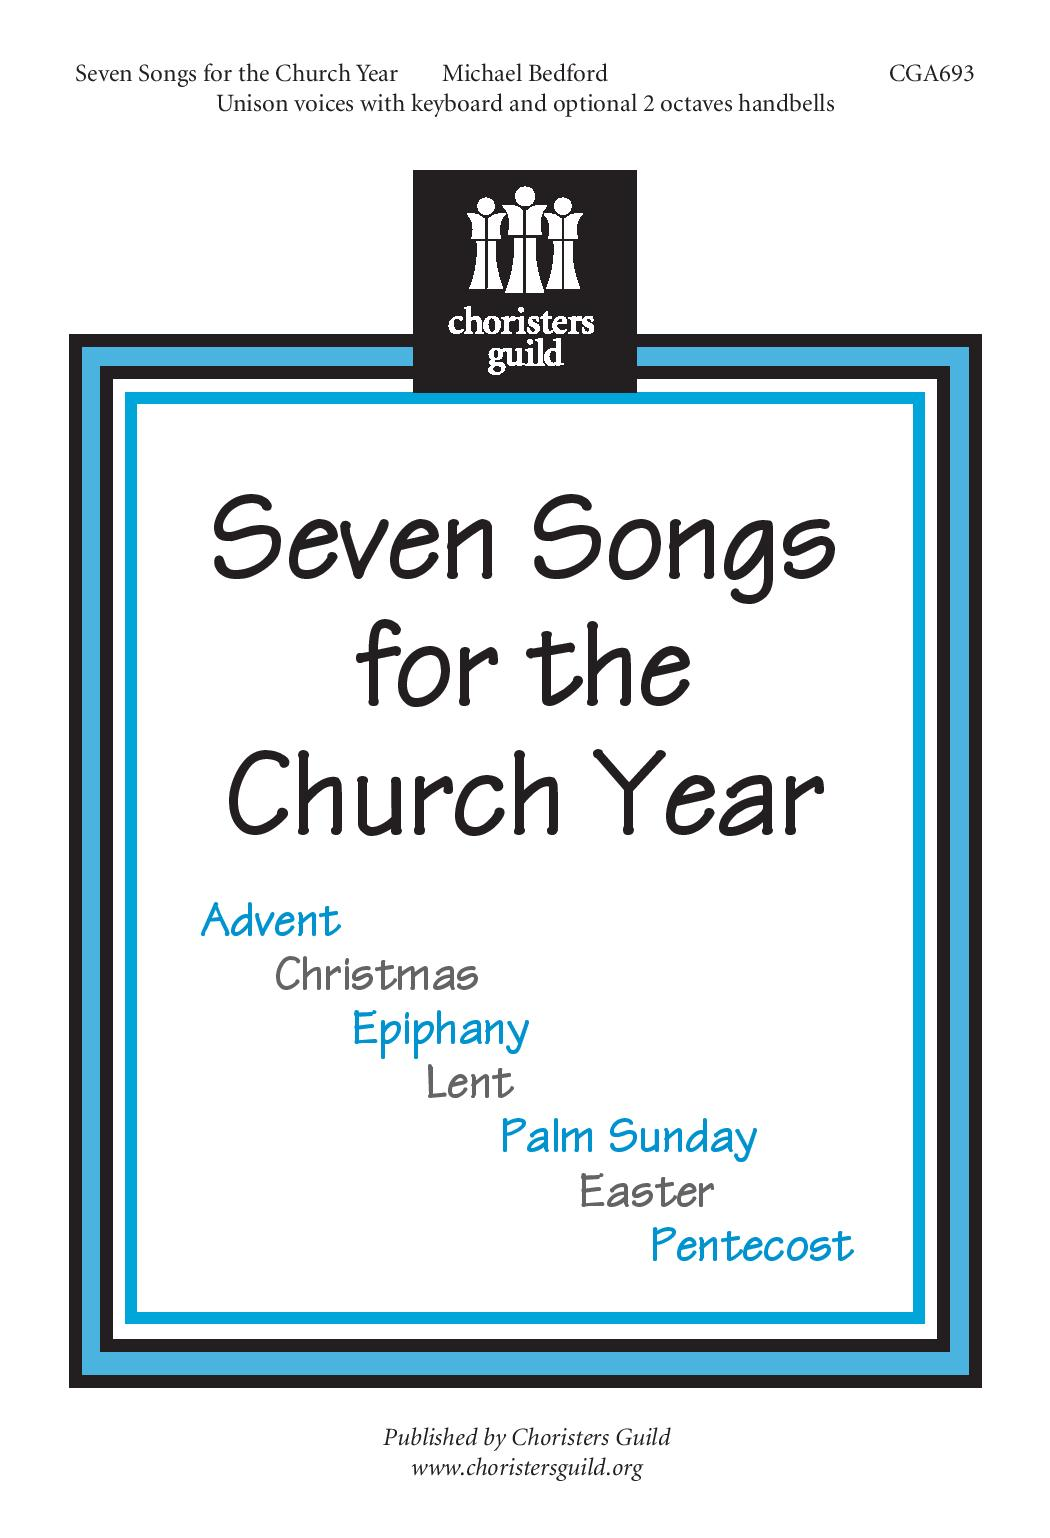 Seven Songs for the Church Year